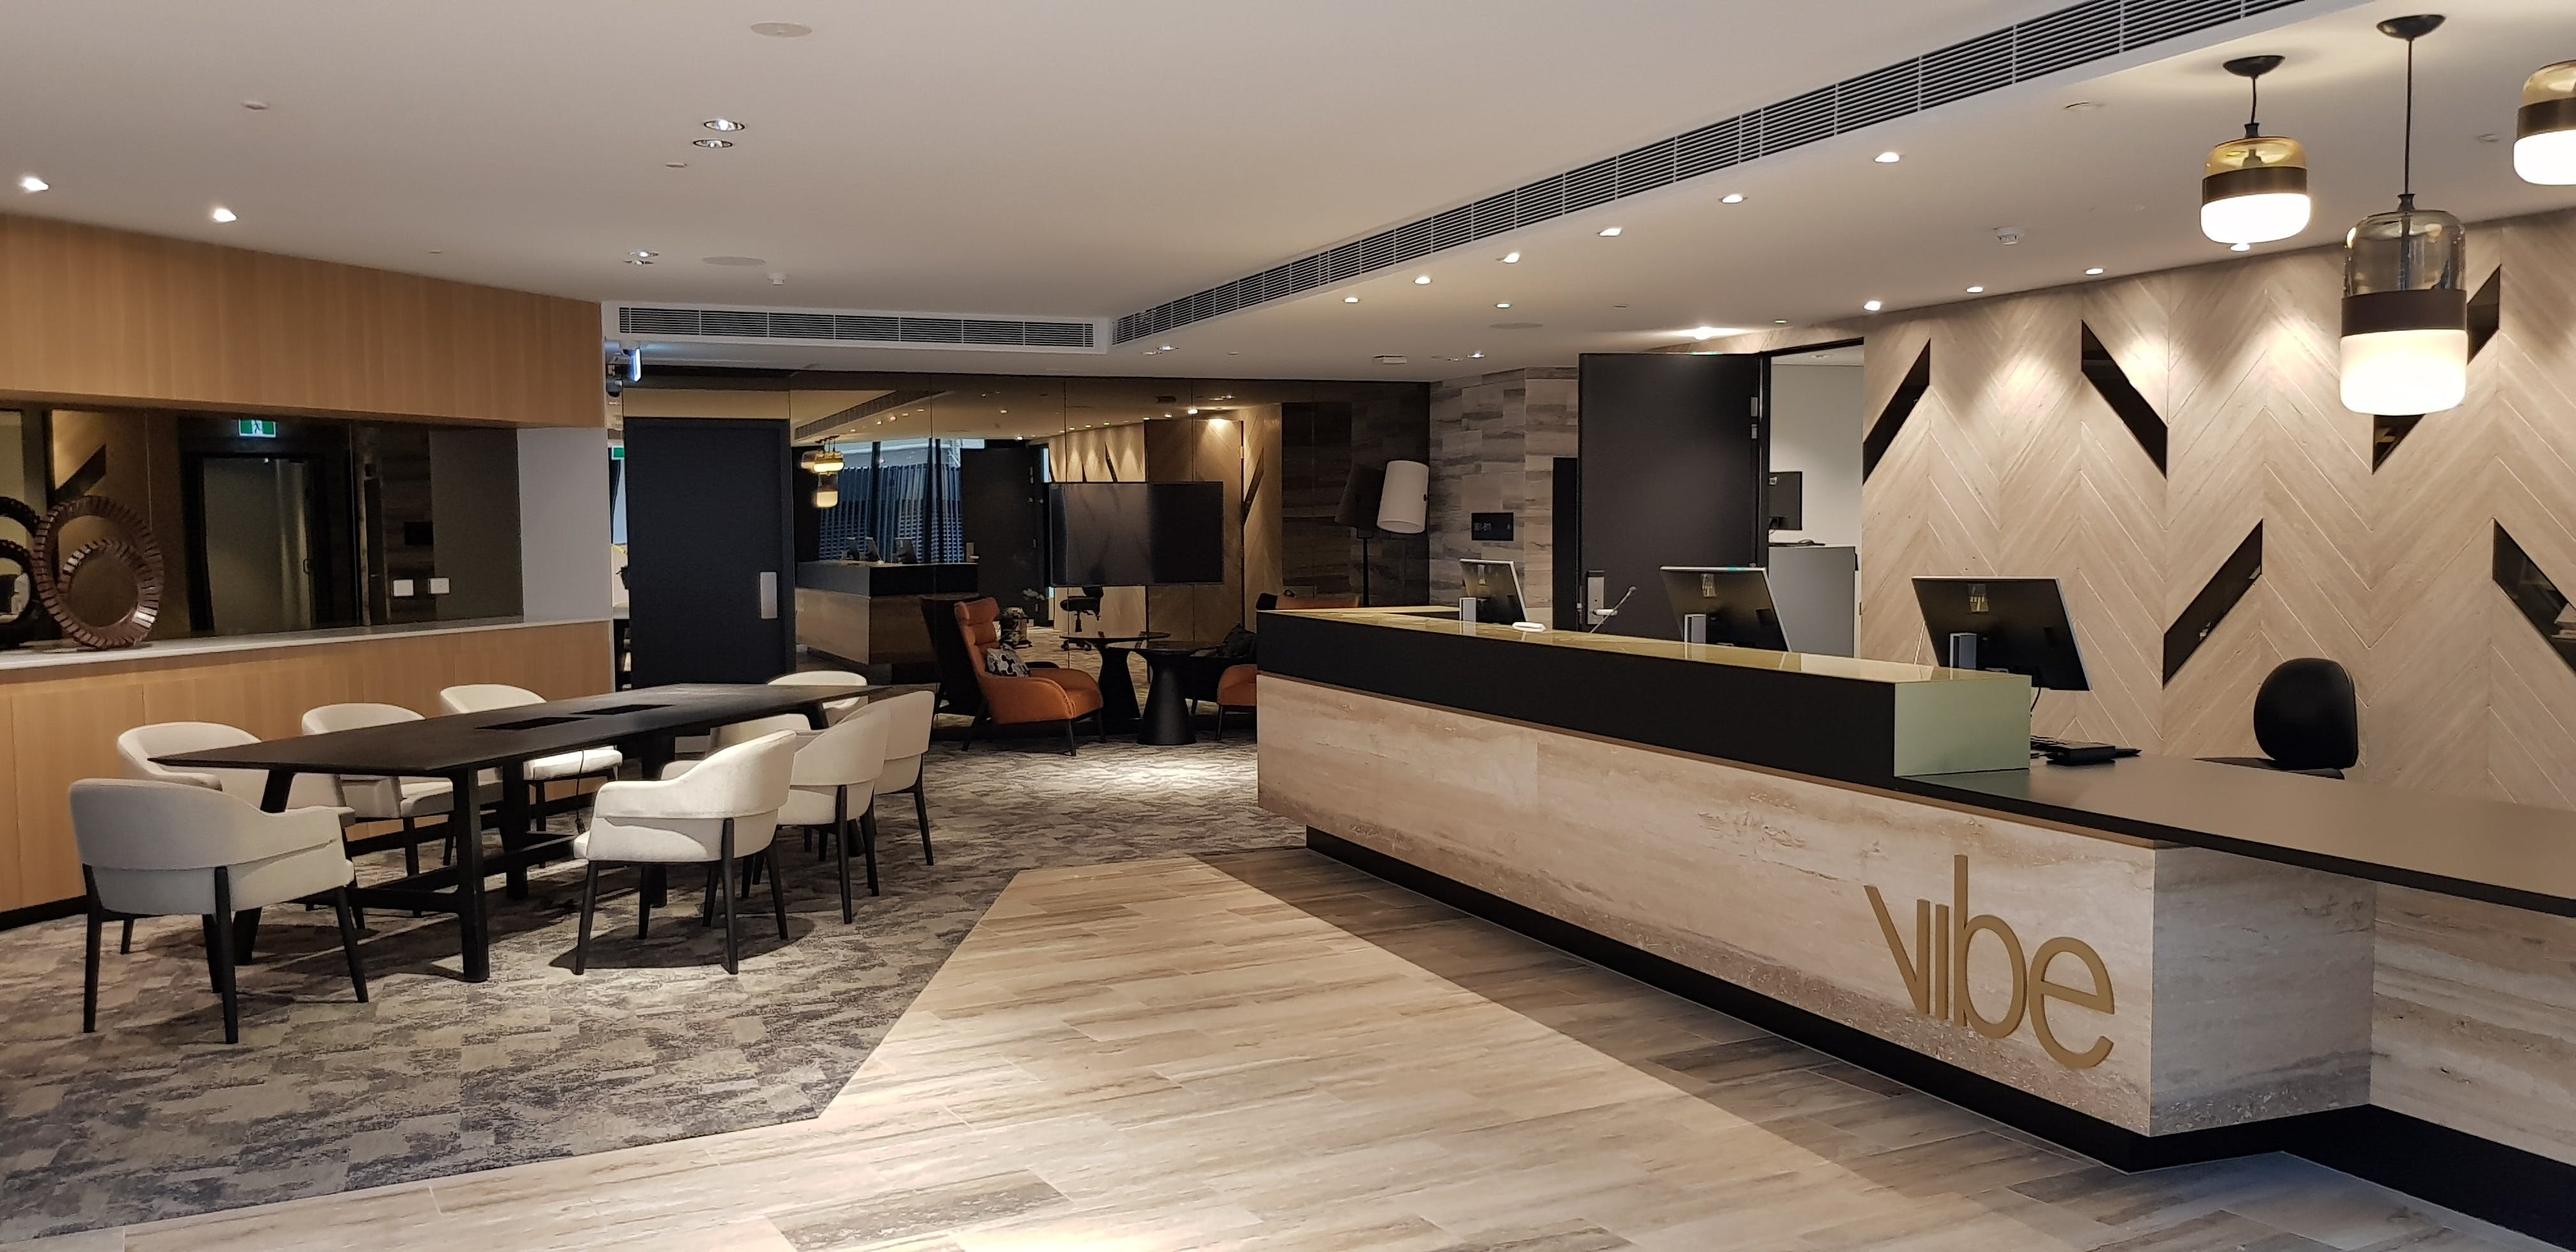 Vibe Hotel North Sydney - Accommodation Nelson Bay